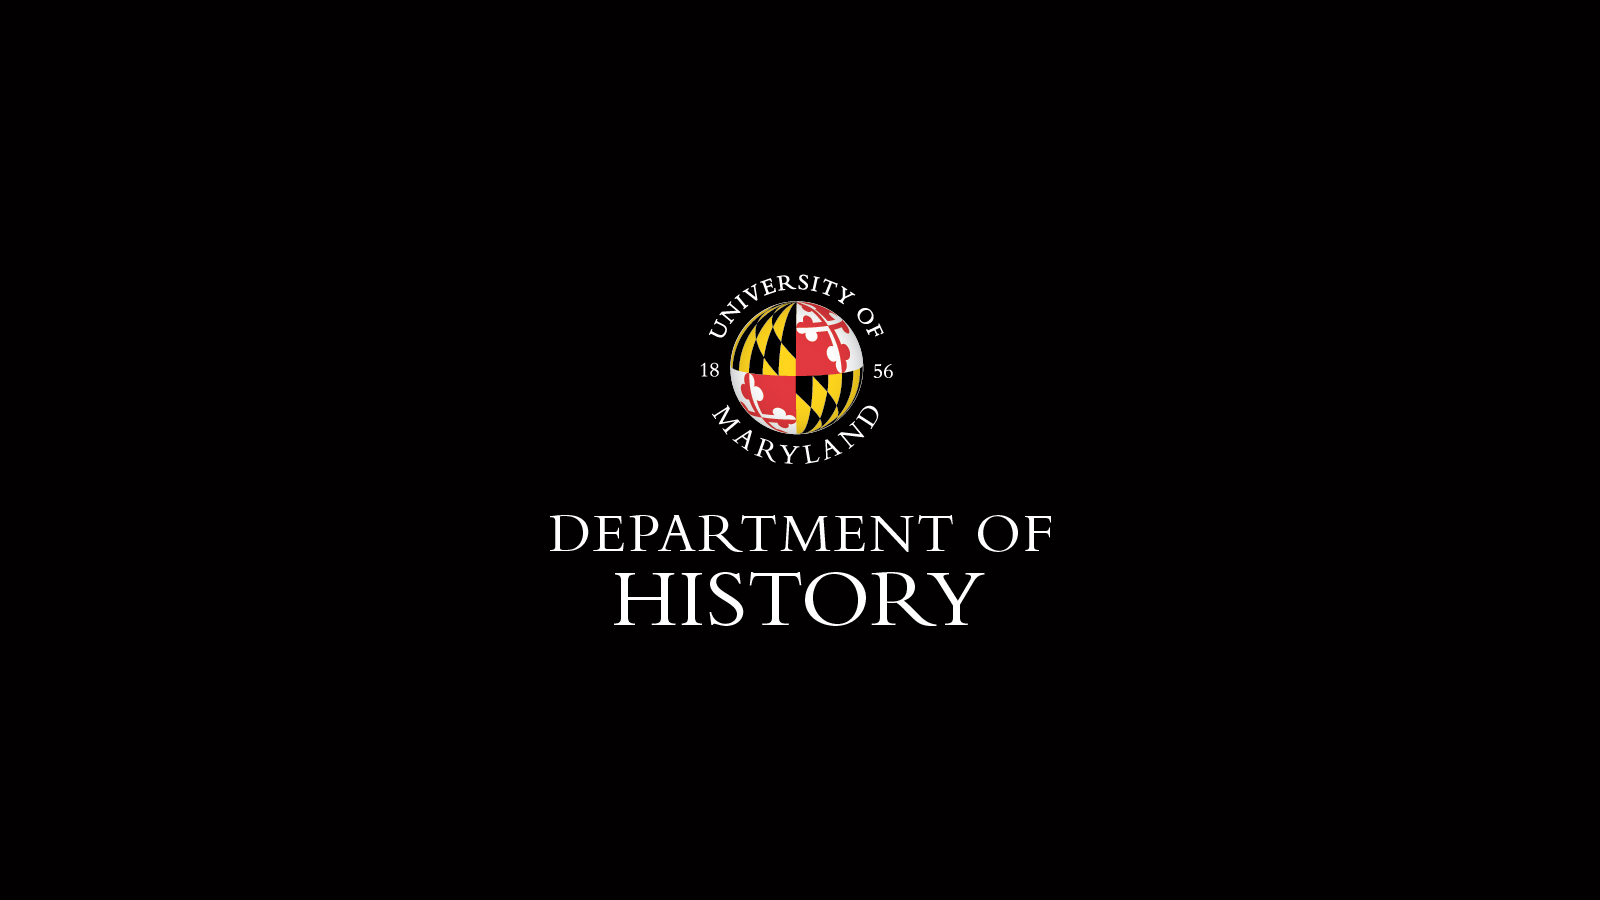 Department of History media logo